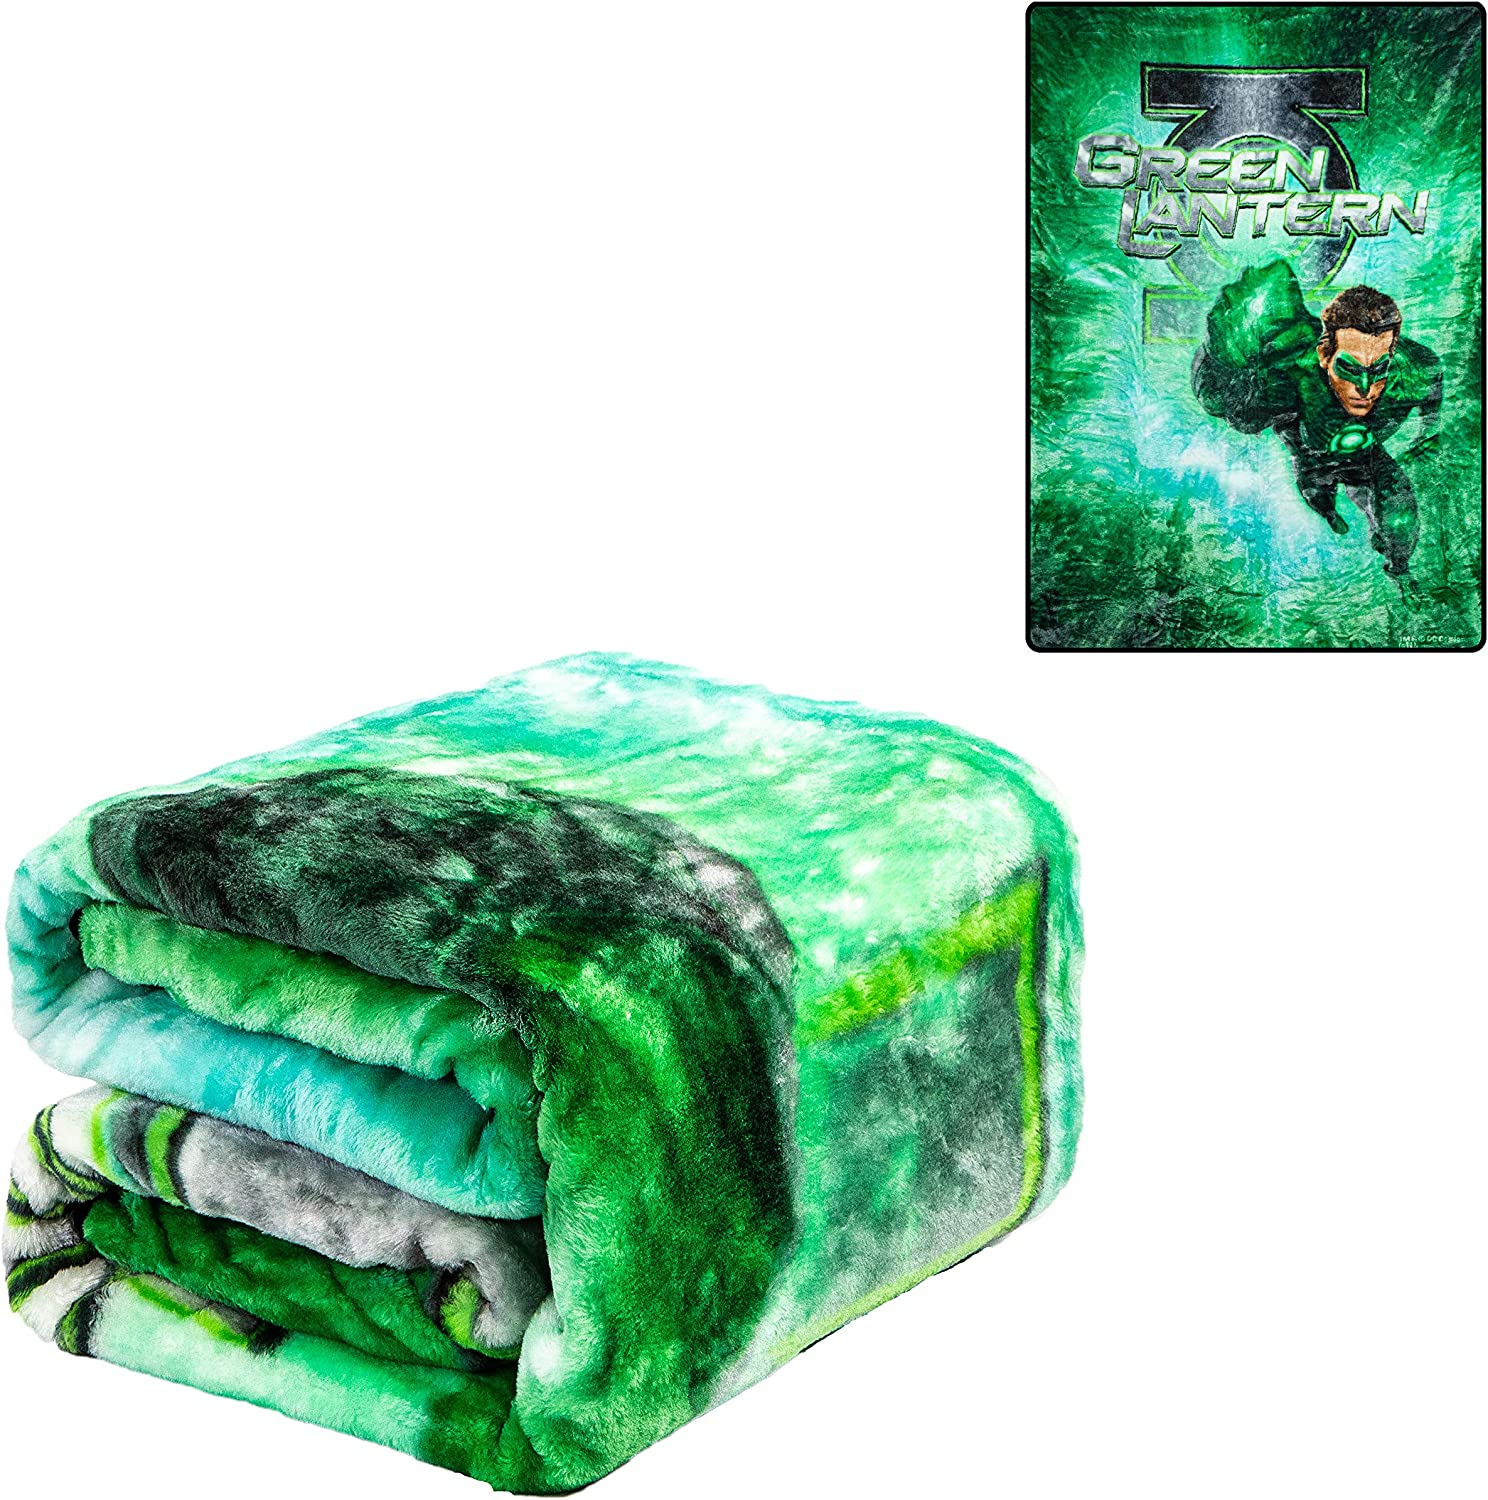 """JPI Plush Throw Blanket - Green Lantern - Twin Bed 60""""x 80"""" - Faux Fur Blanket for Home Decor, Bedding Sets, Sofa Bed, Couch, Picnic Blanket, Camping Blanket"""